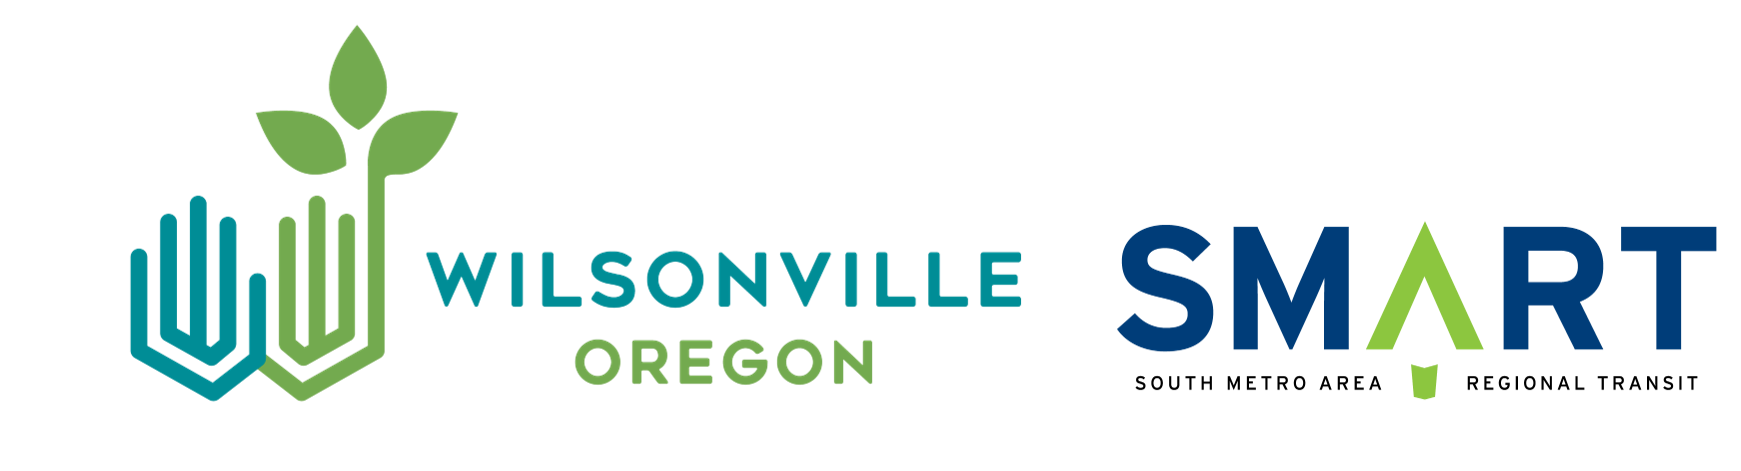 SMART and WILSONVILLE LOGO